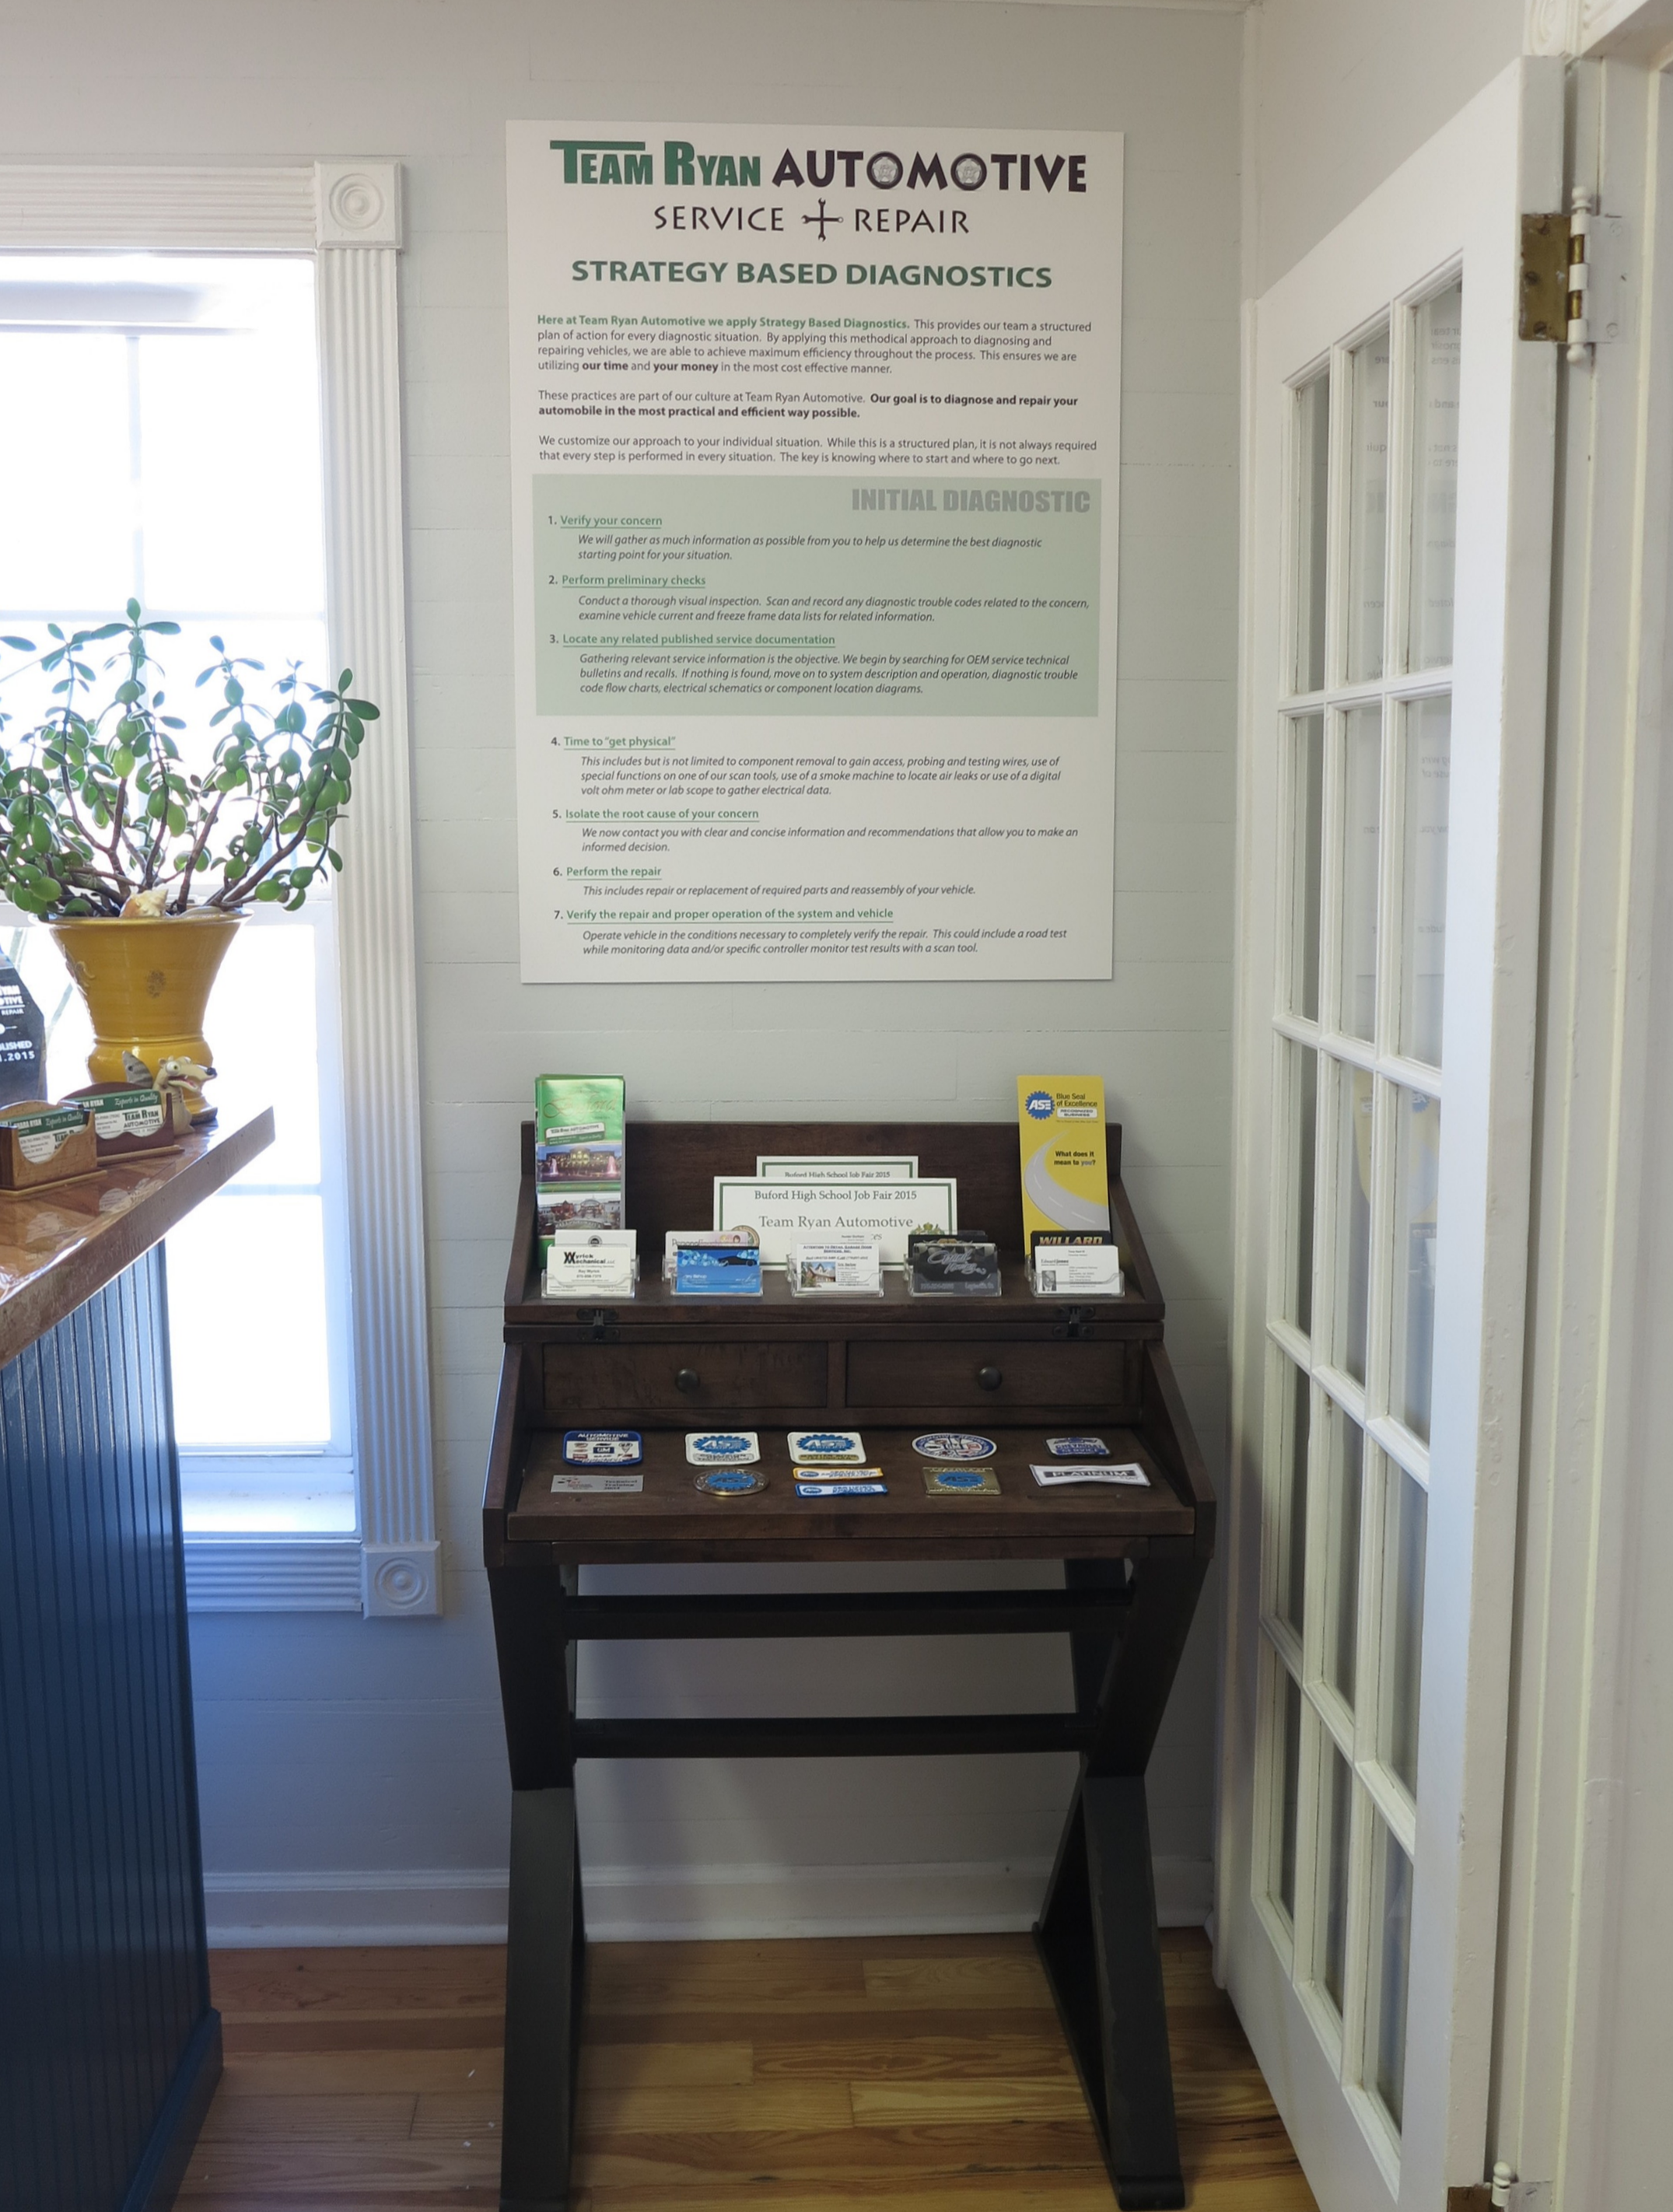 Our Strategy Based Diagnostics process is so important to us we have it posted in the reception area.